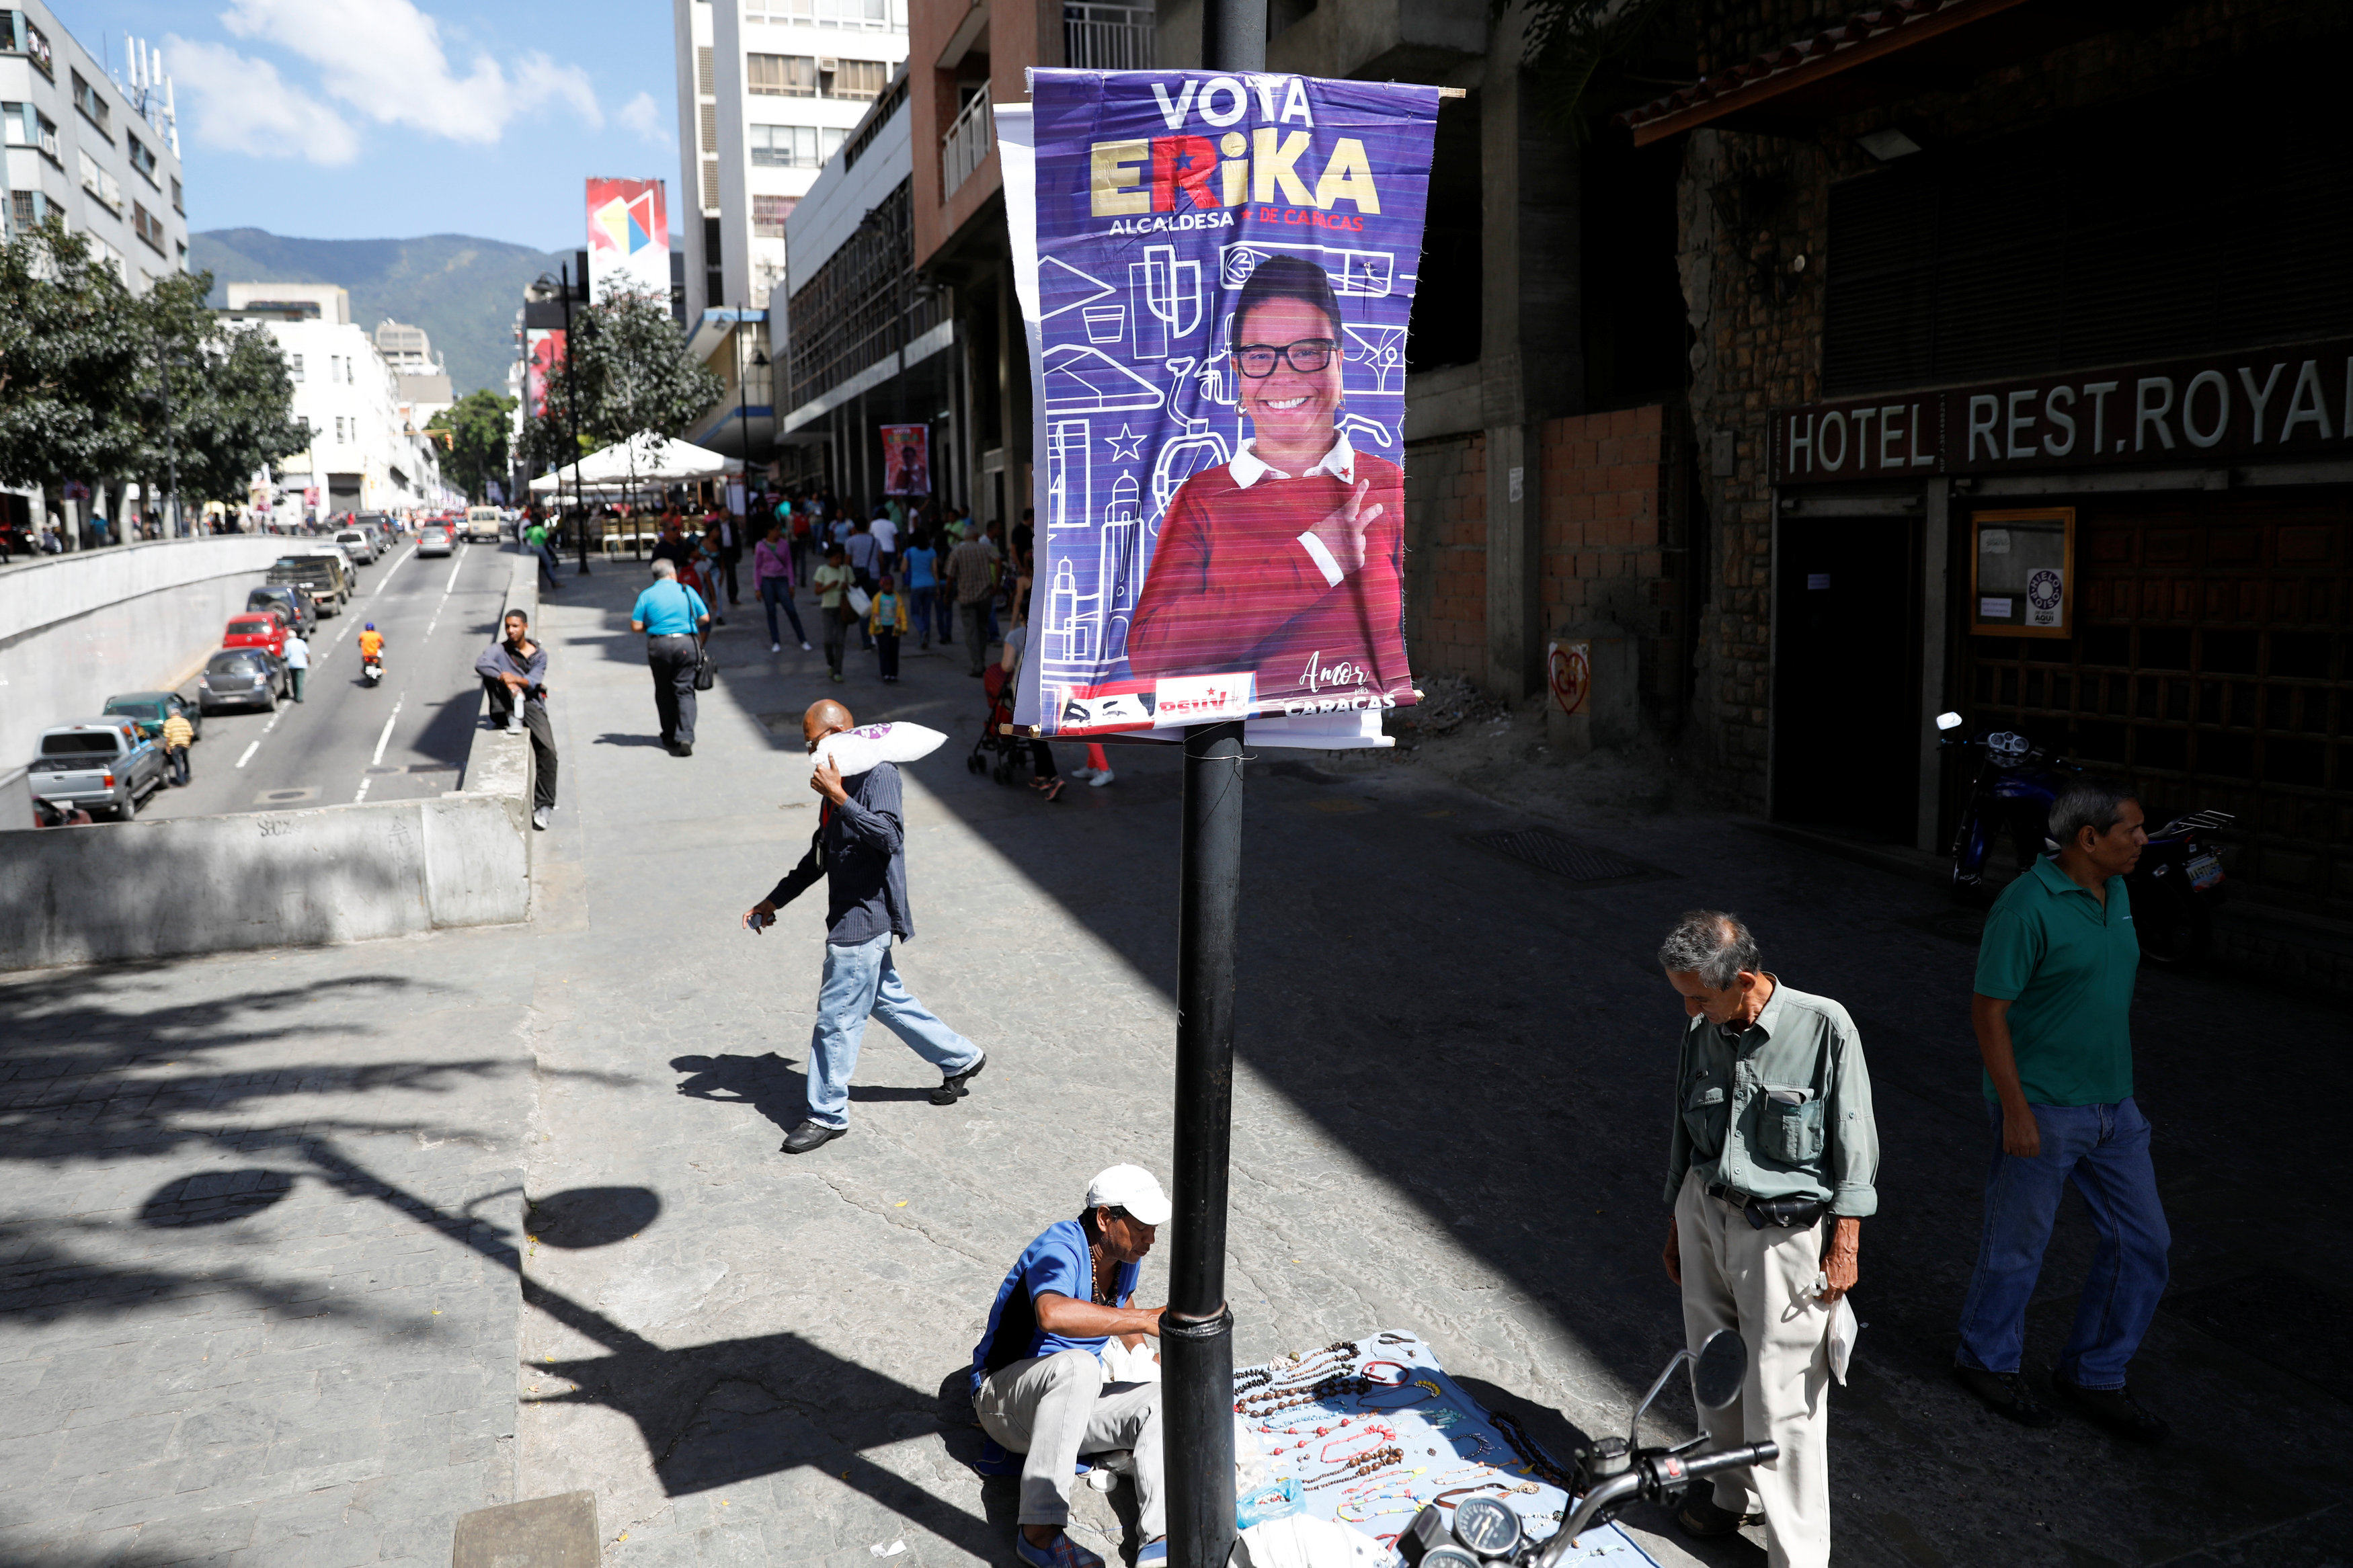 With opposition split, Venezuela mayoral vote will strengthen Maduro